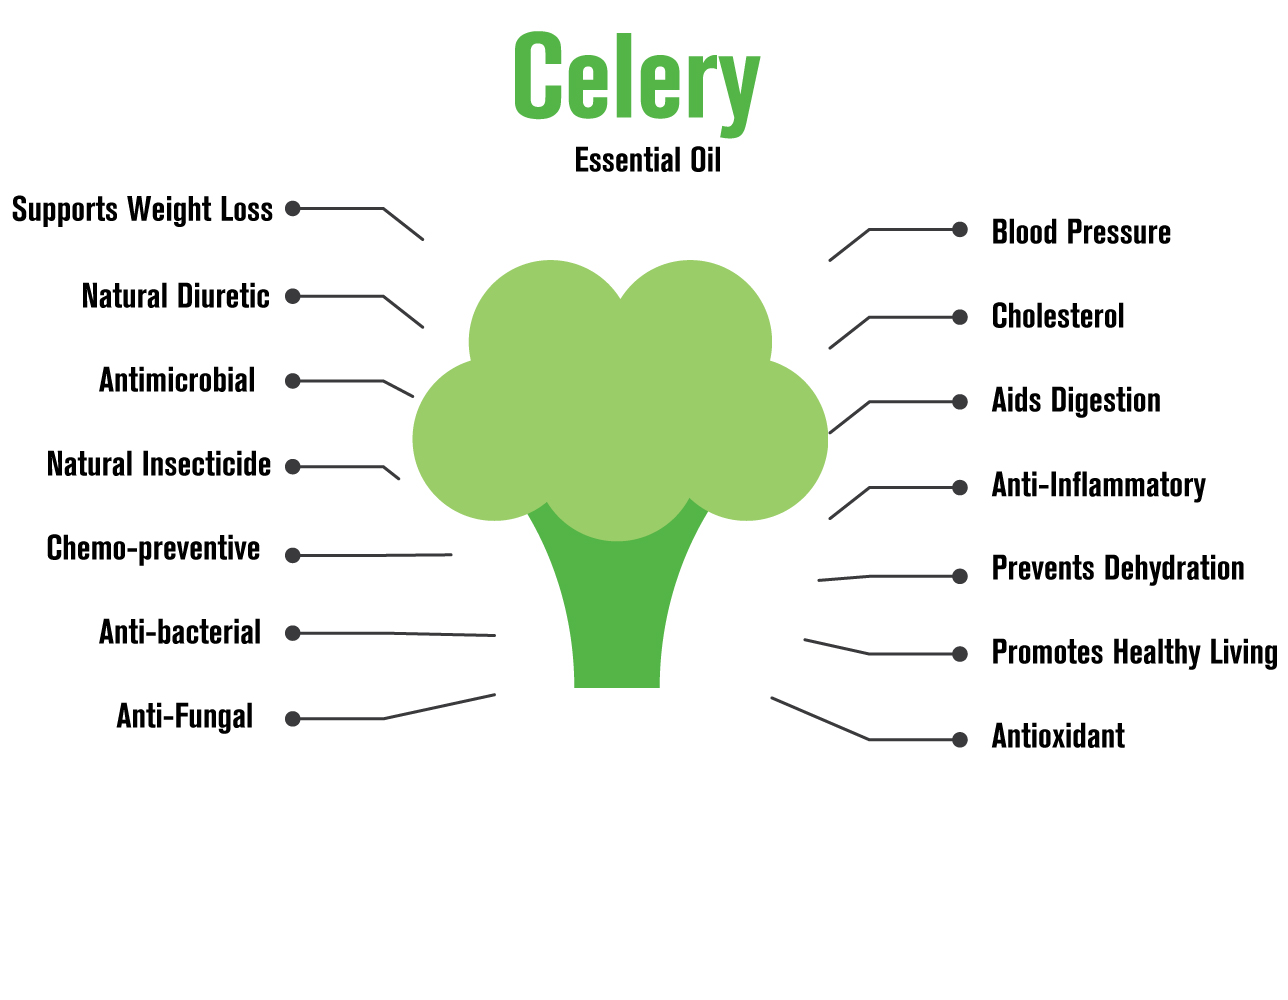 100517 Celery essential oil infographic